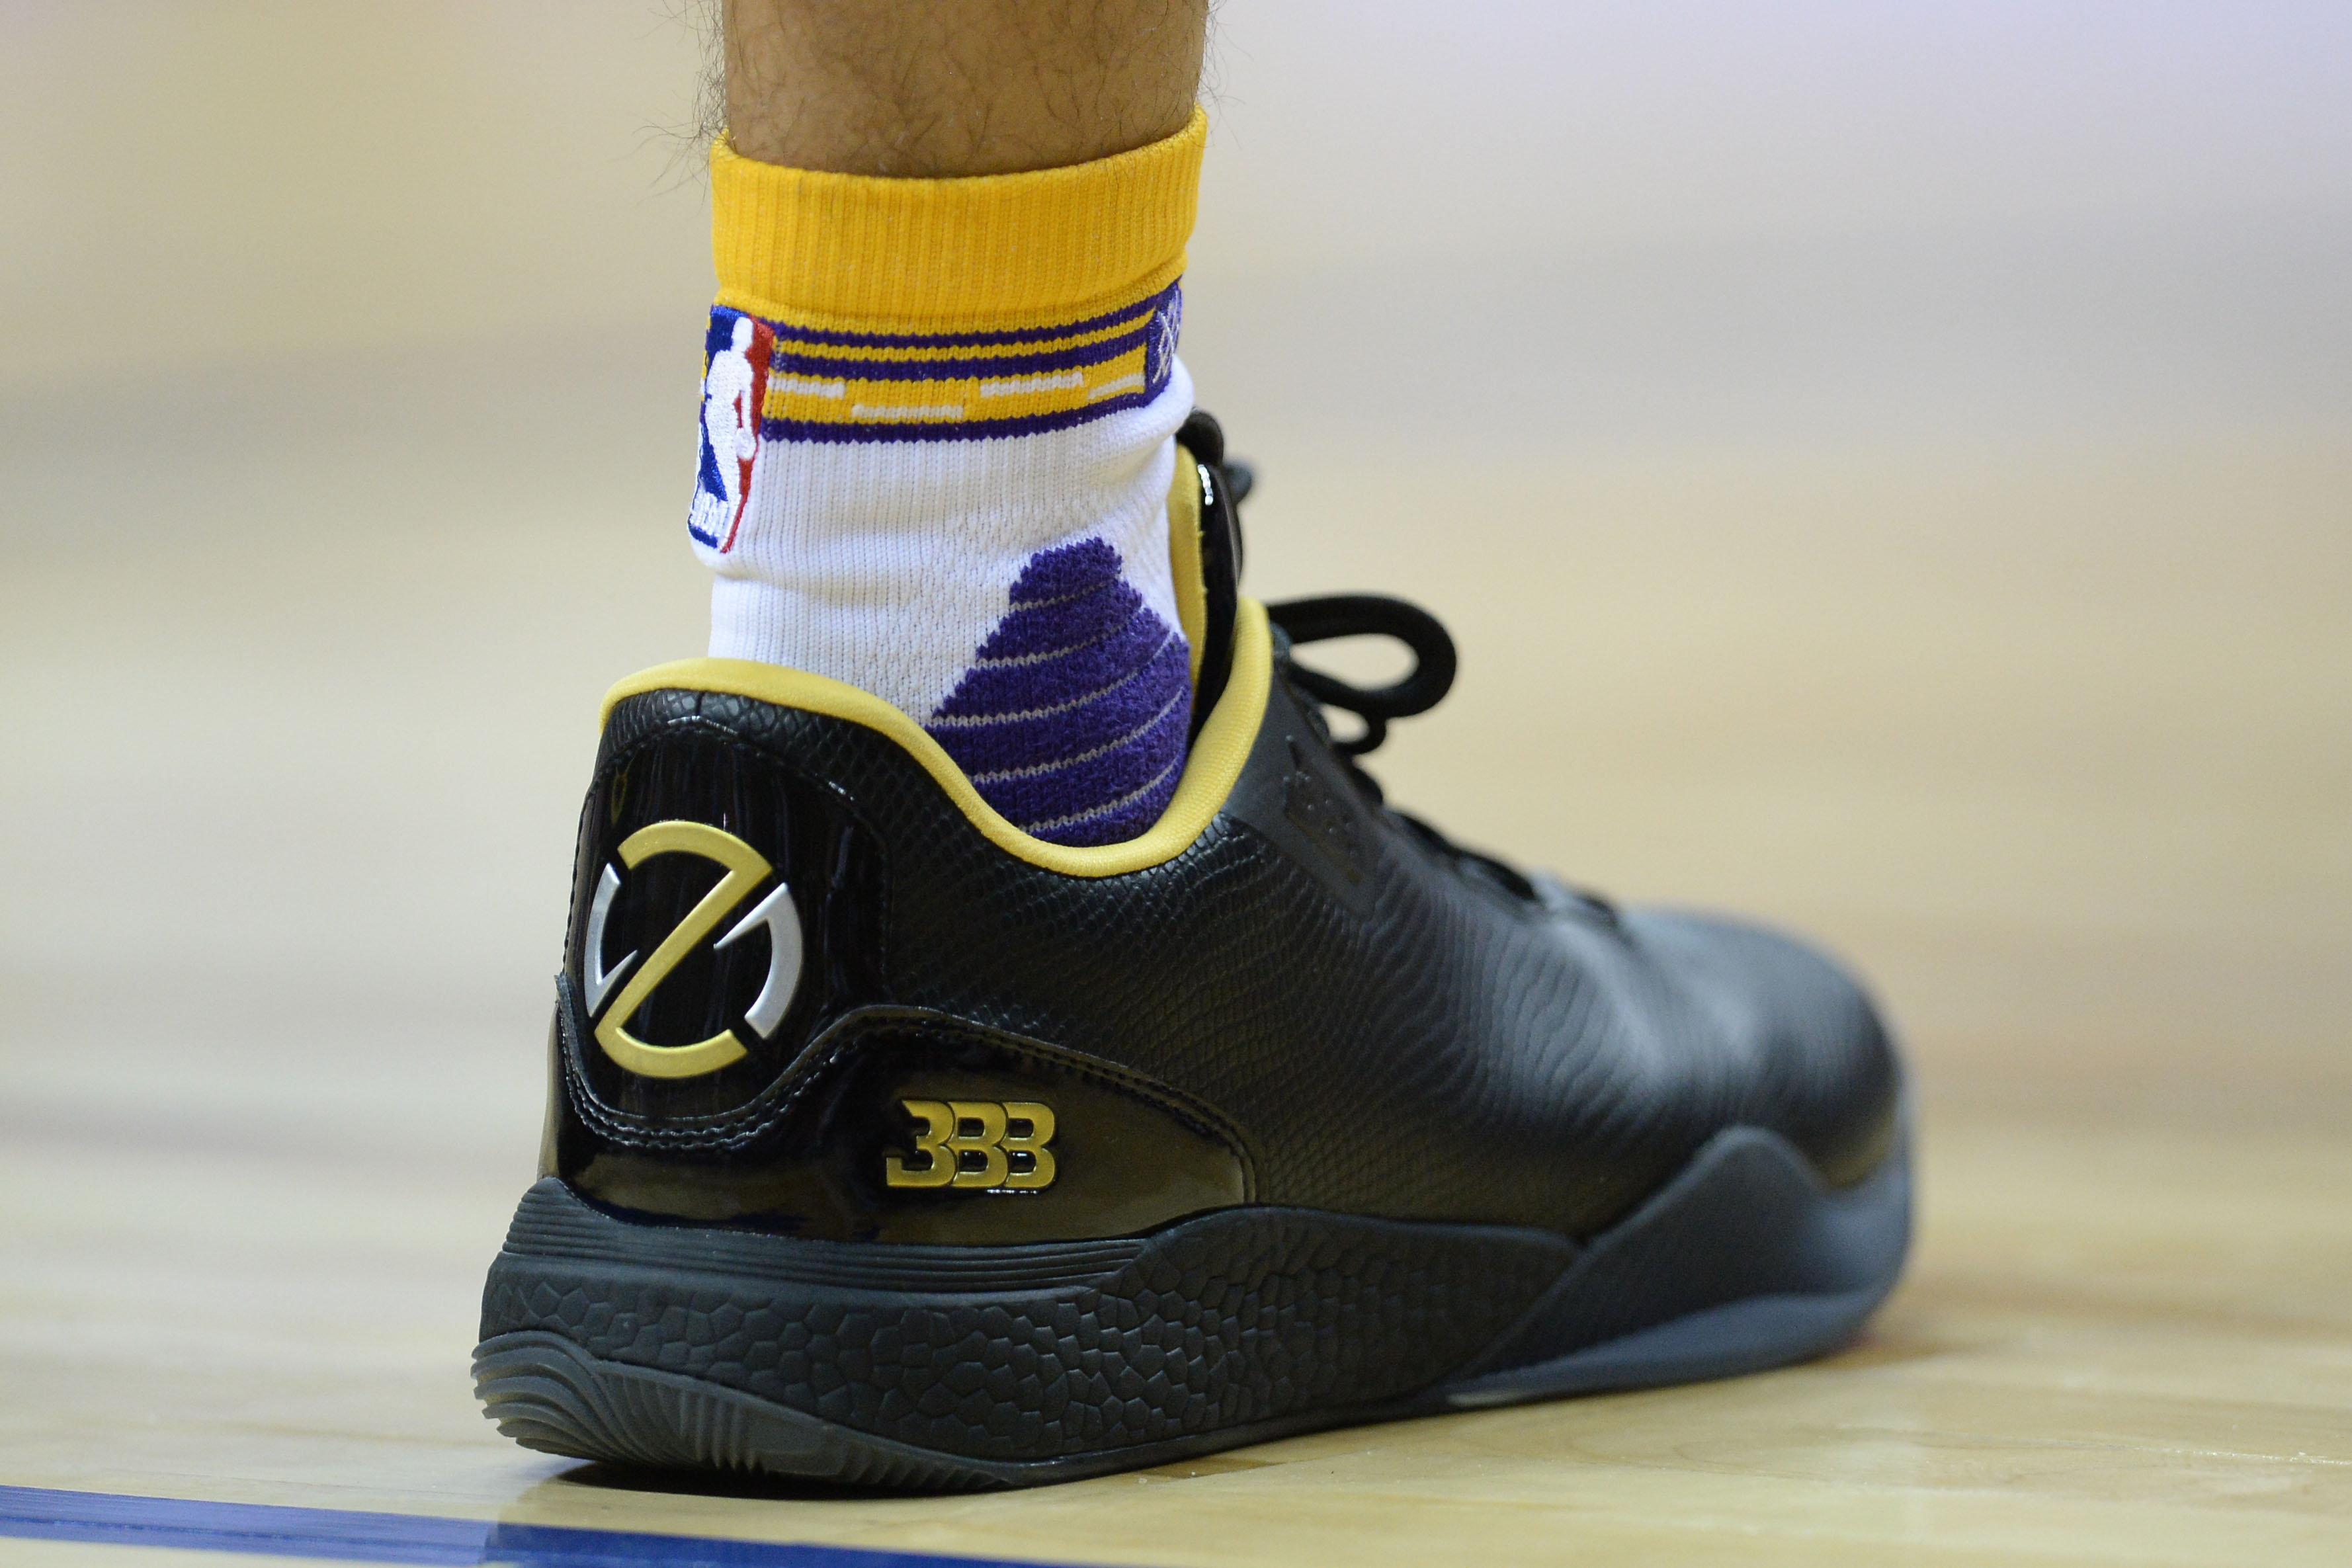 Which 2017 NBA rookies have shoe deals